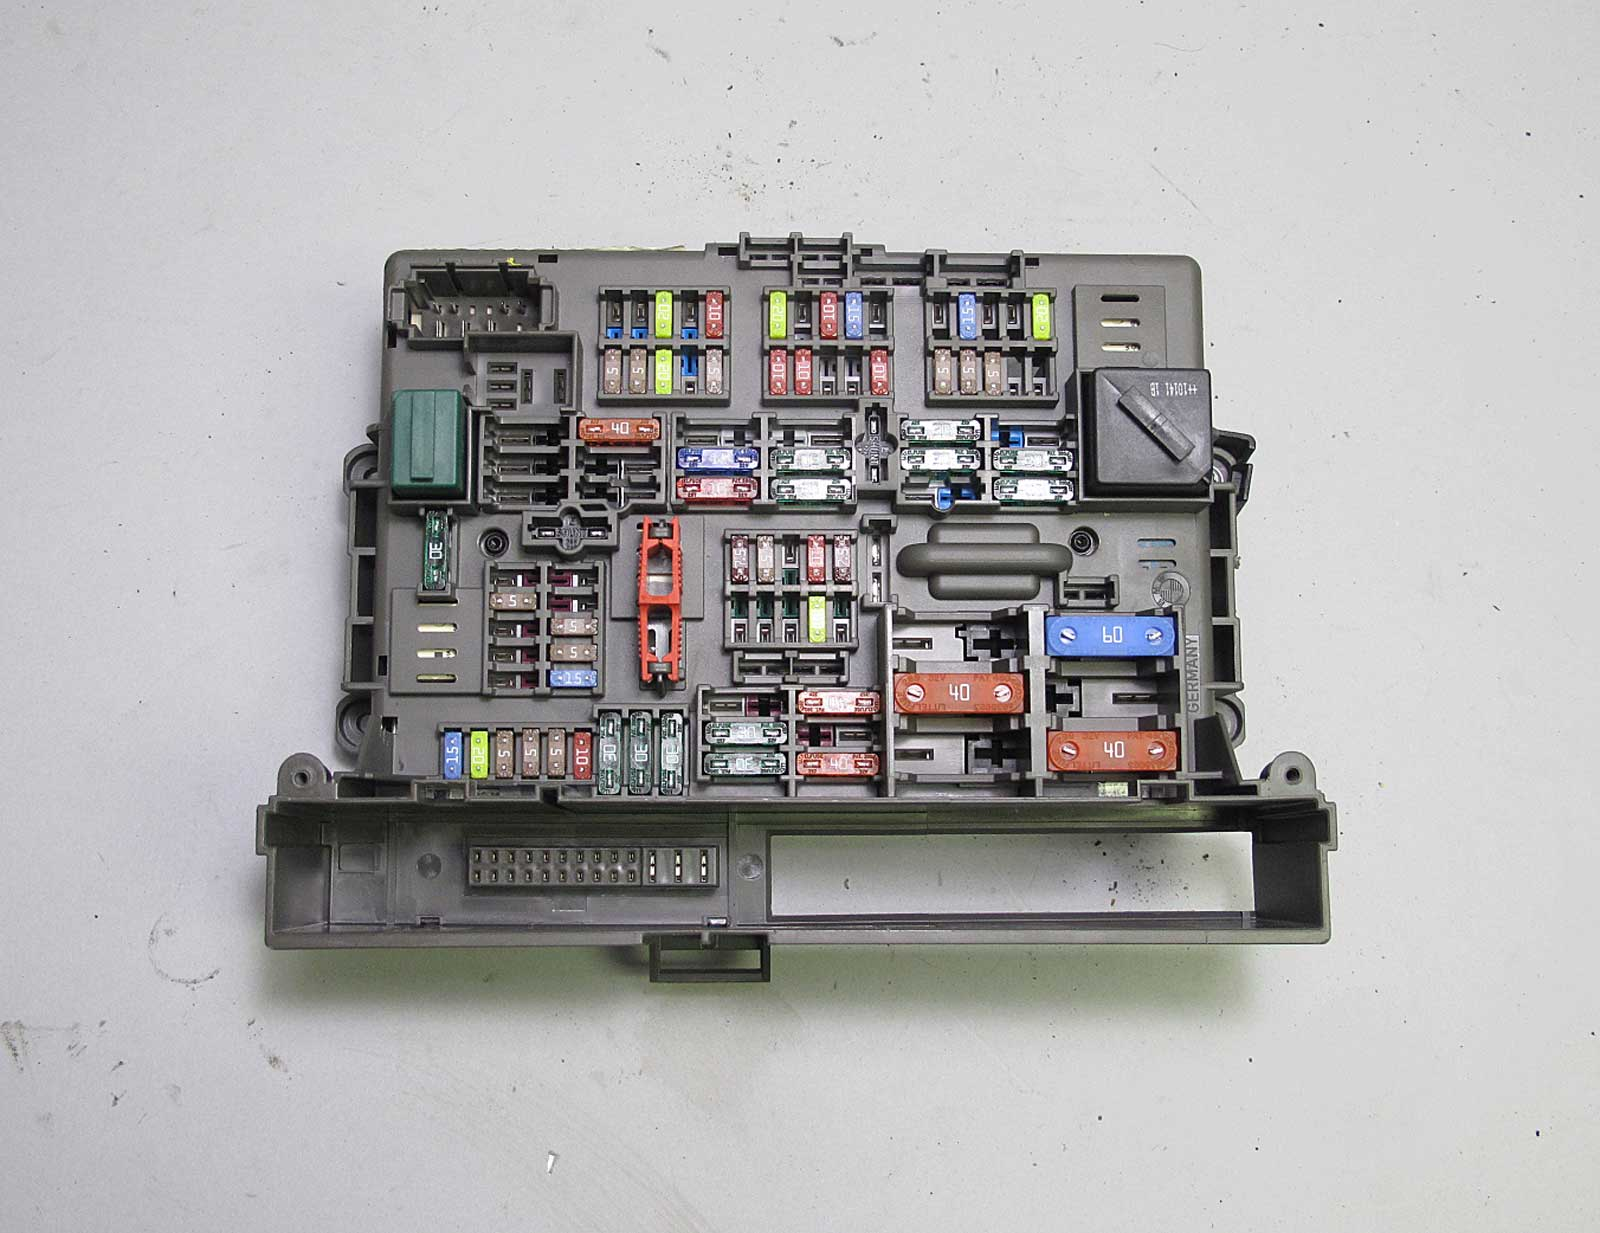 hight resolution of bmw 335i fuse box ruc yogaundstille de u2022bmw e90 e92 3 series e82 front interior